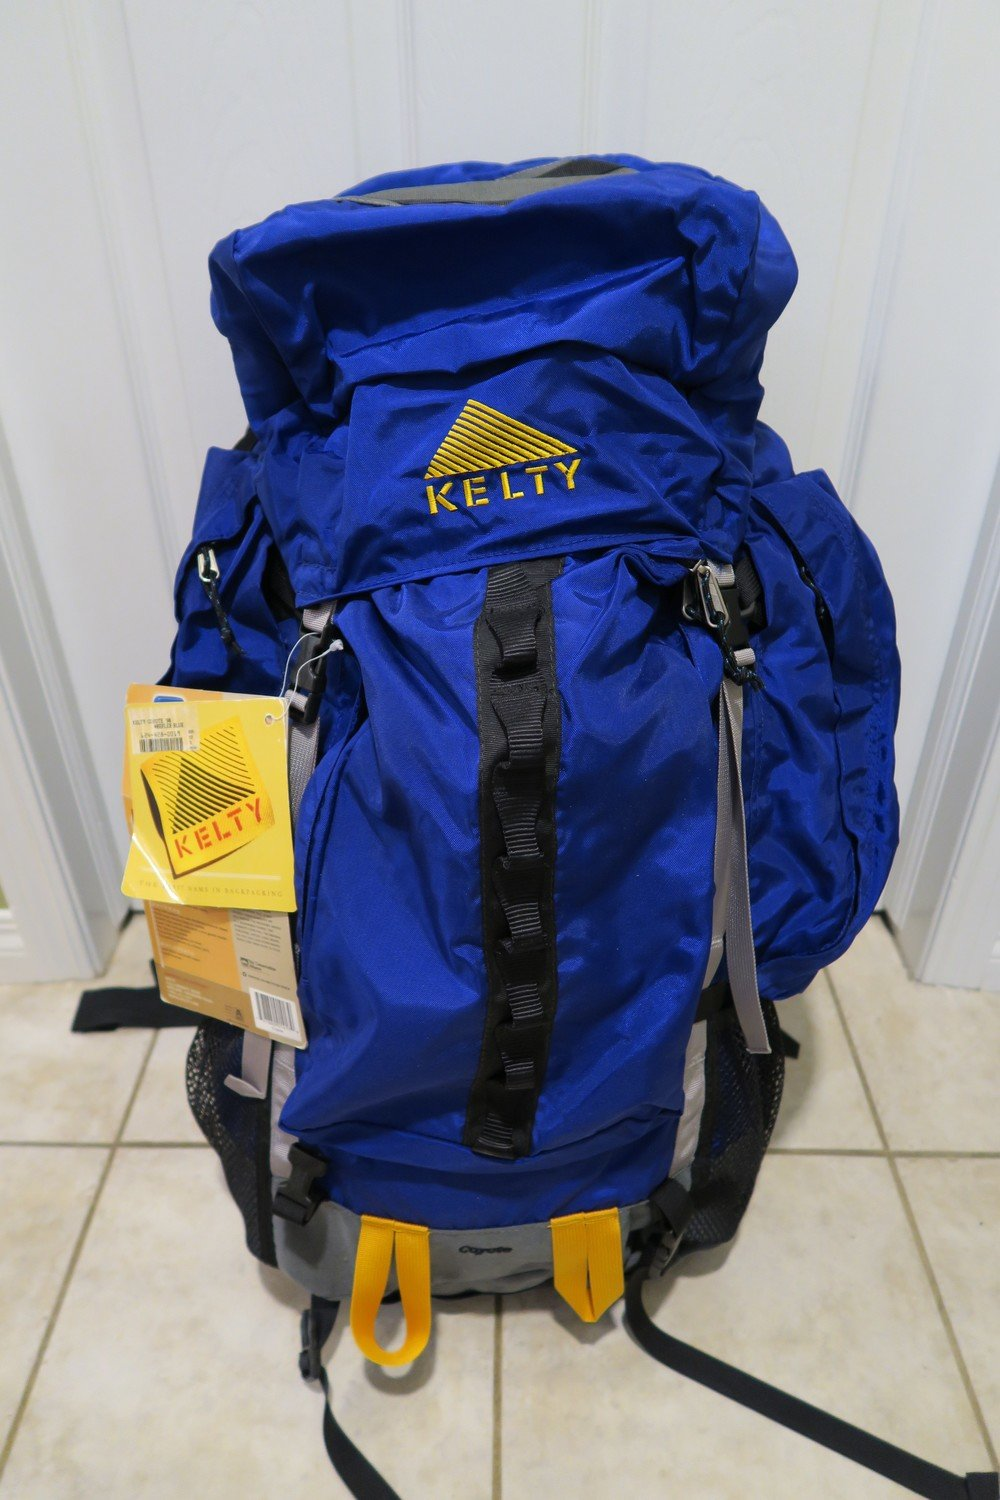 Kelty Coyote 3200 (55L) Backpack - NEW